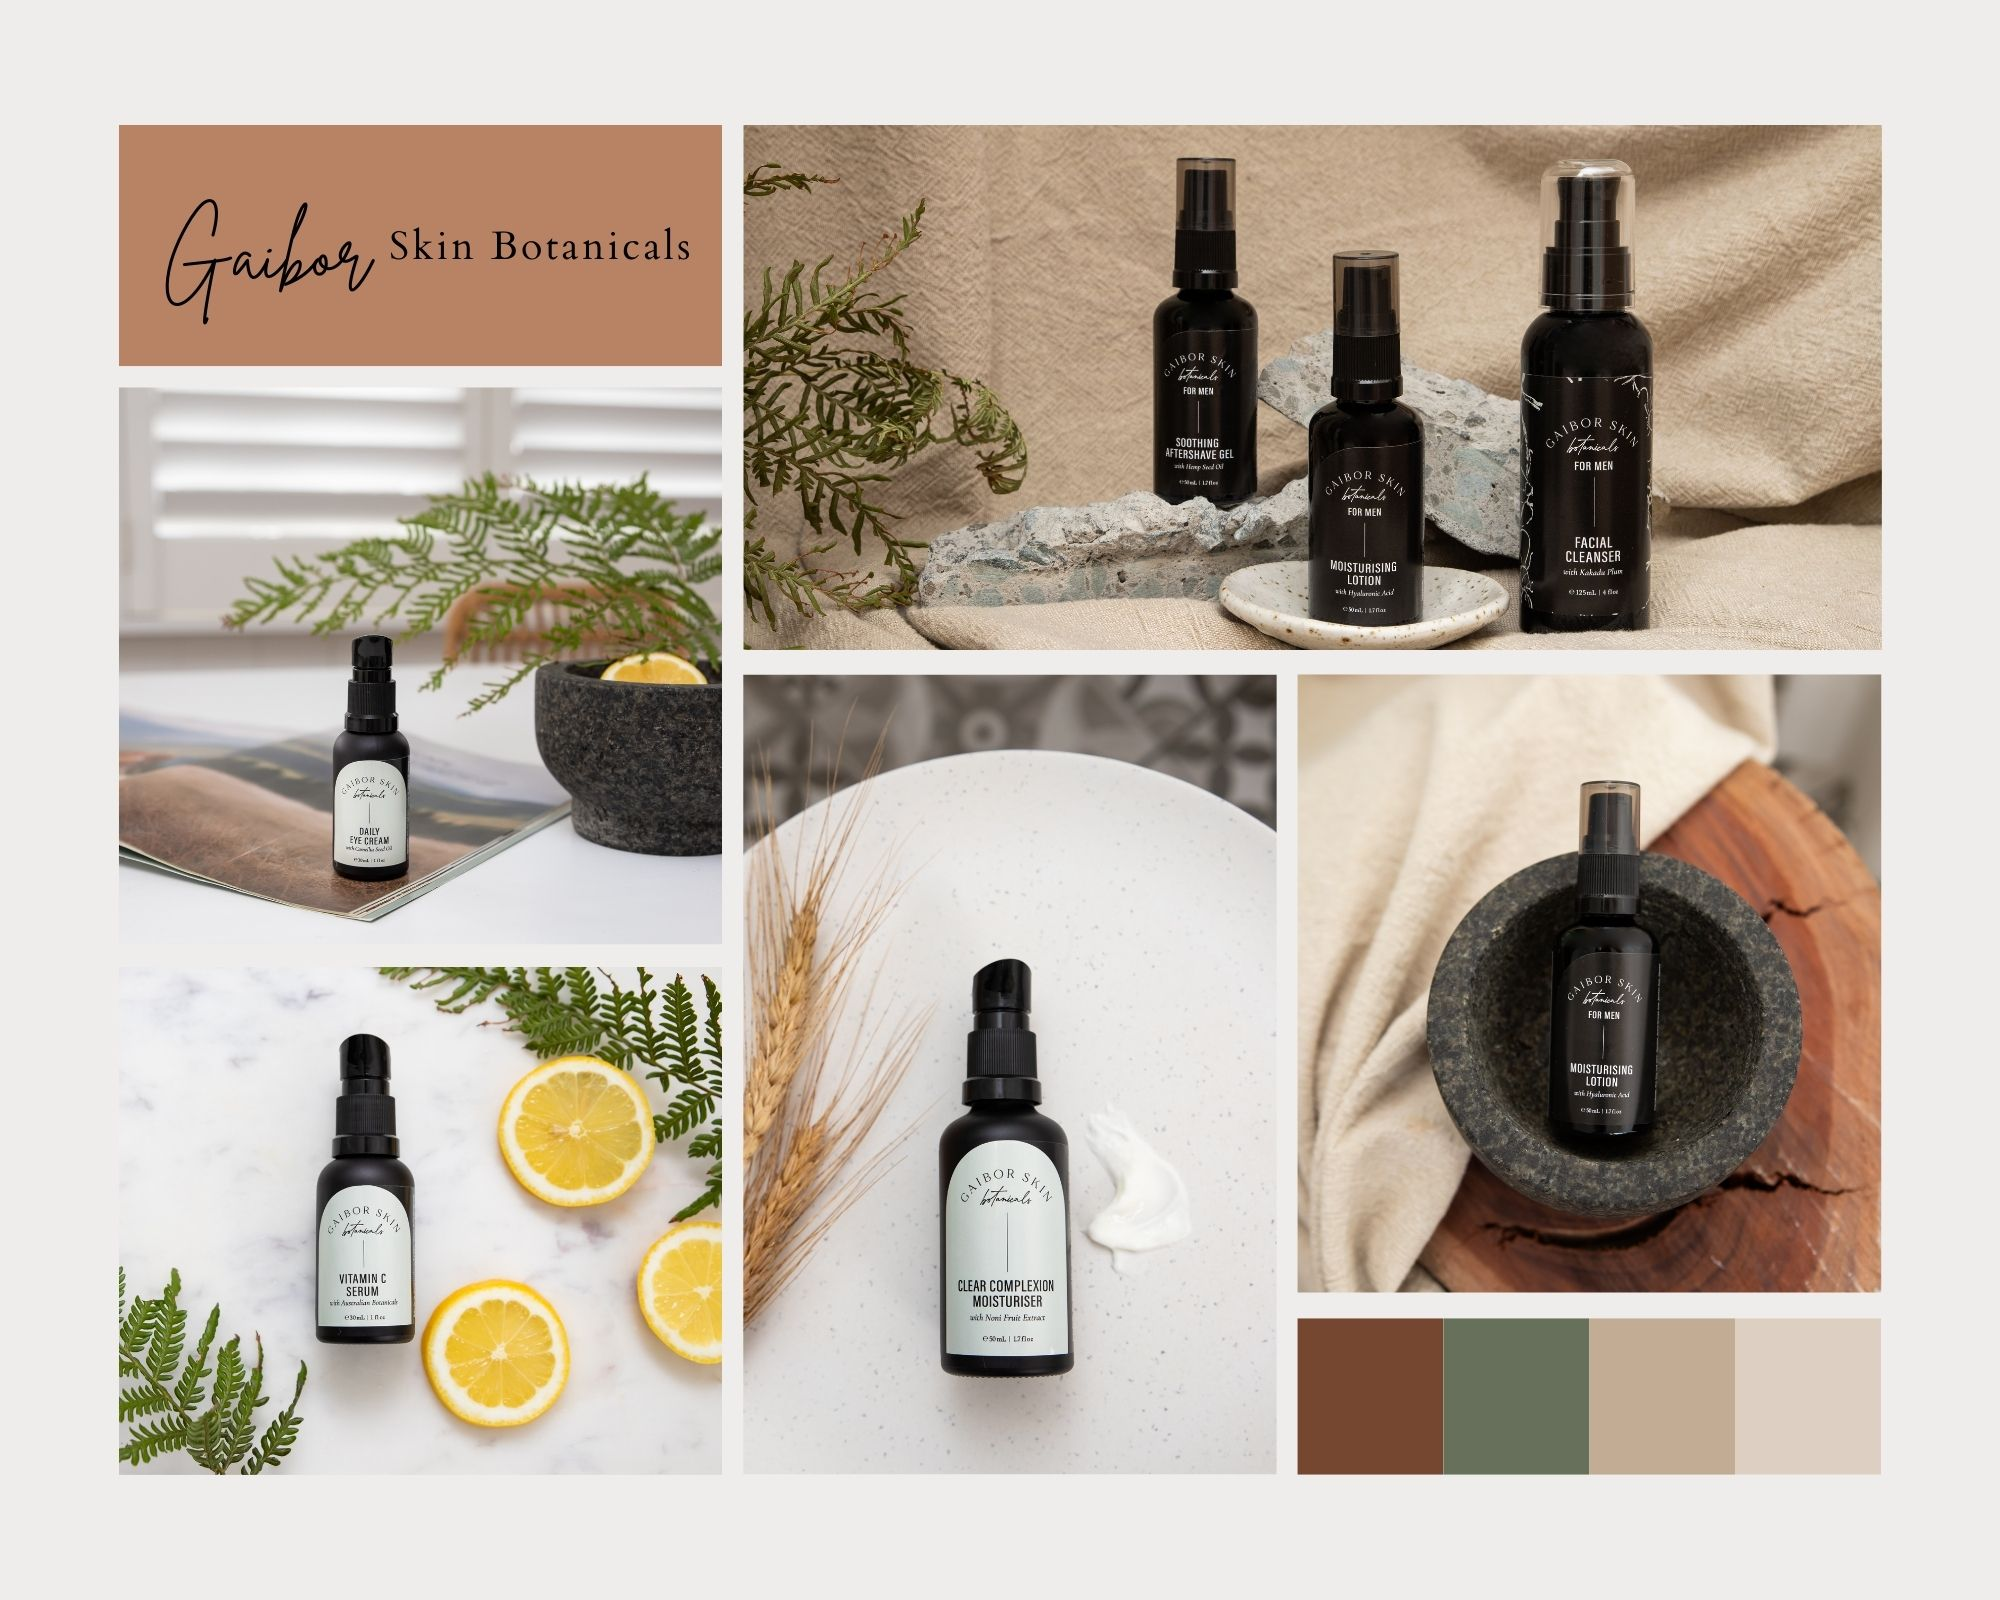 Beautiful light filled product photography